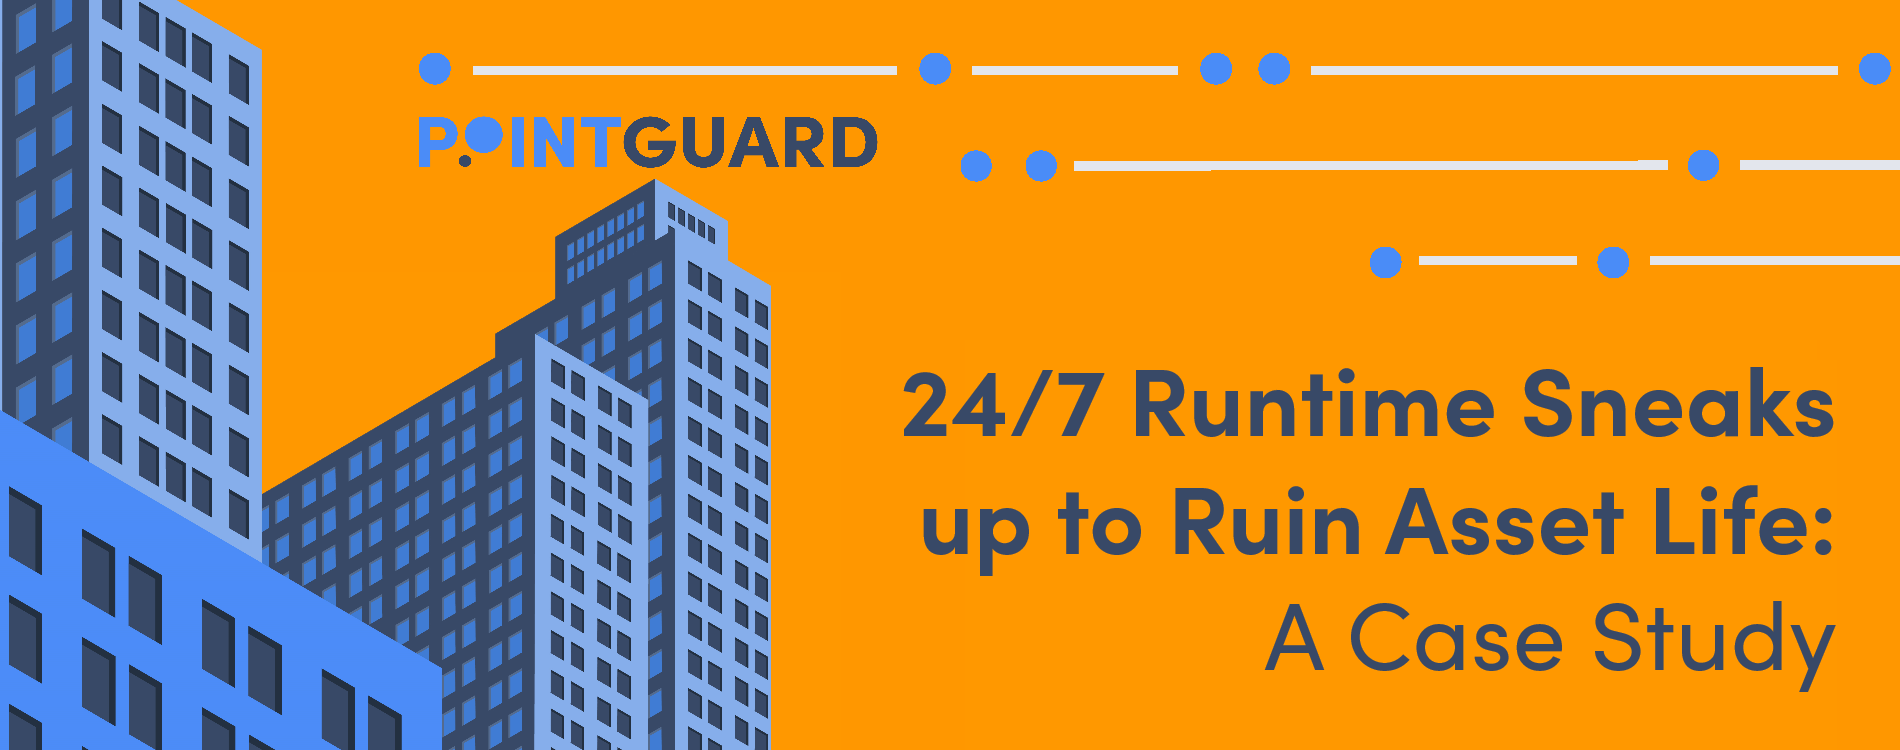 PointGuard Case Study - 24/7 Runtime Ruins Asset Life